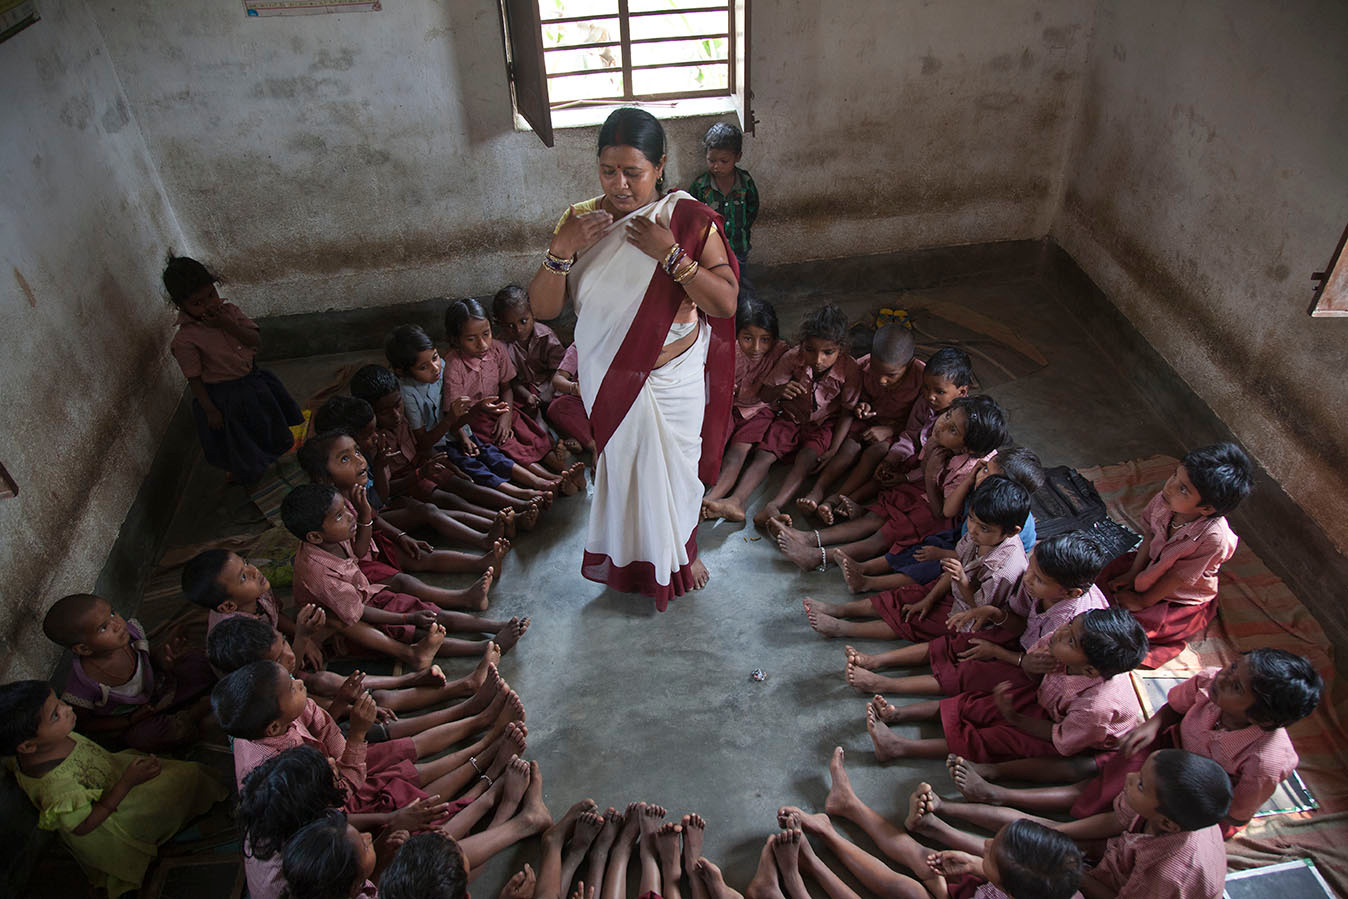 Anganwadi worker, Manju Kumari teaches her wards through a play session at her Anganwadi Centre in Samda village, Saharsa district, Bihar, India, 2013.